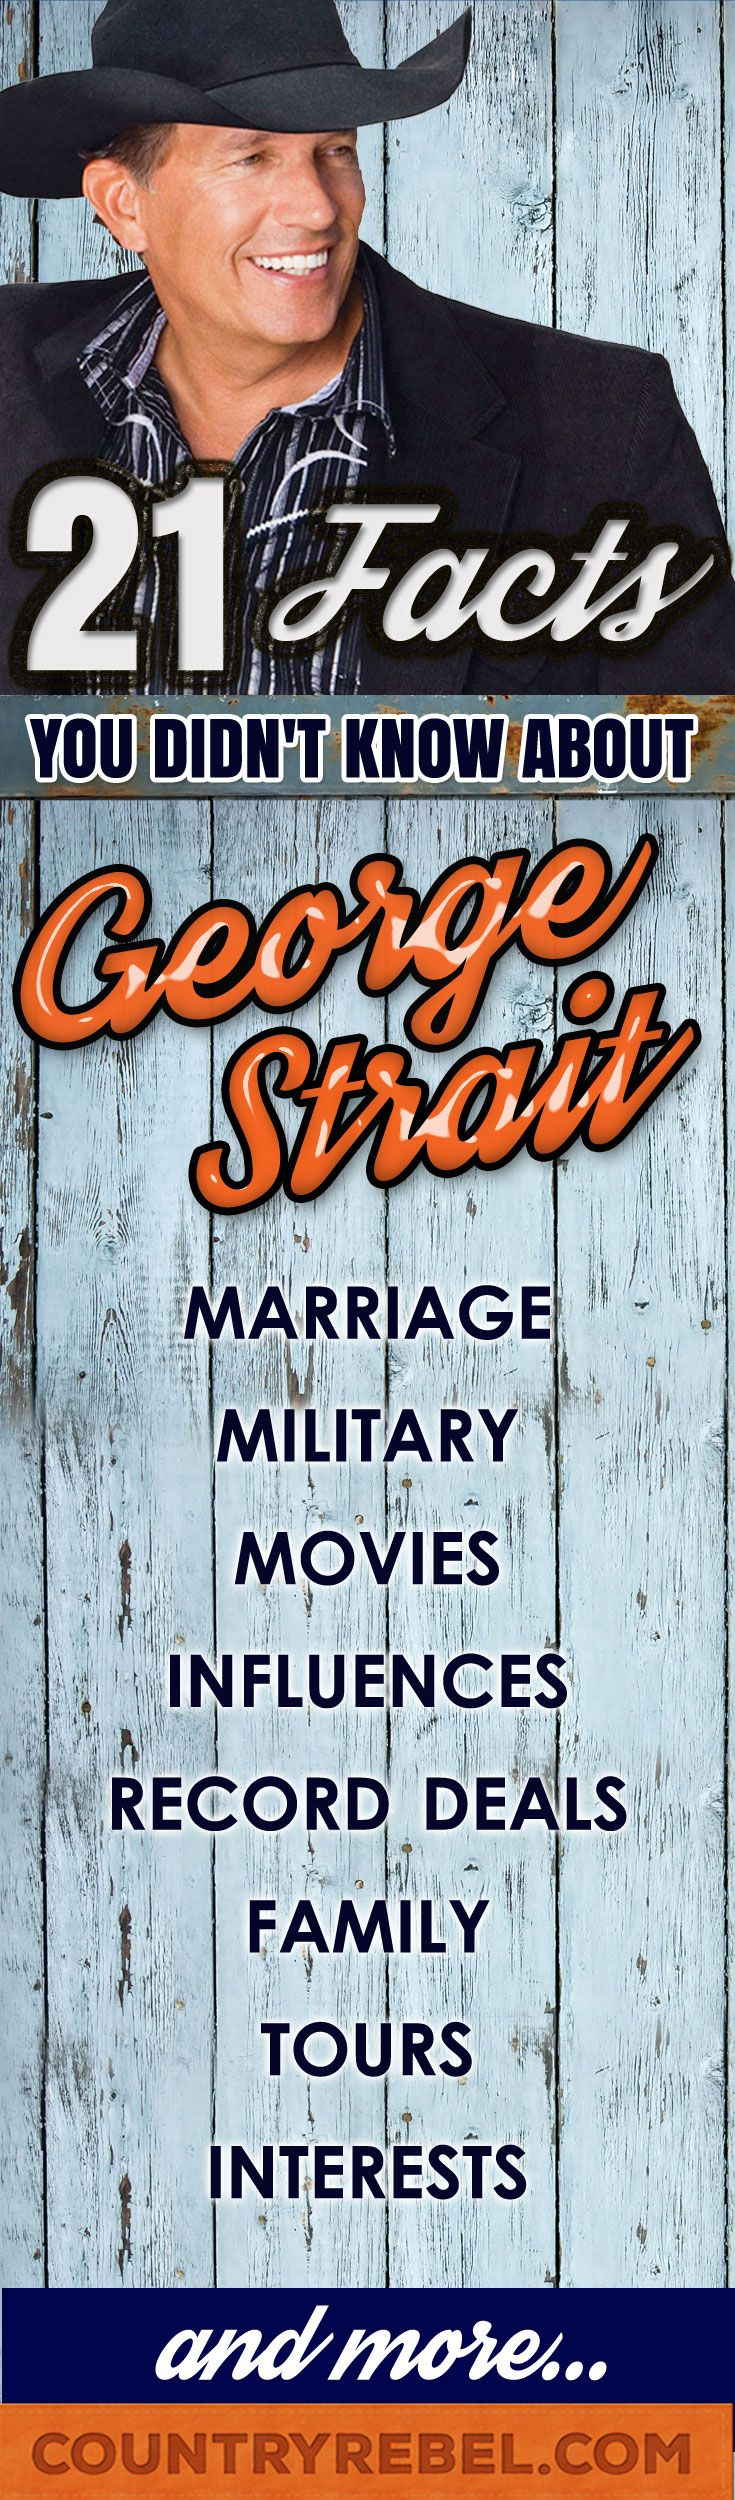 George Strait Facts - 21 Facts You Didnt Know About George Strait